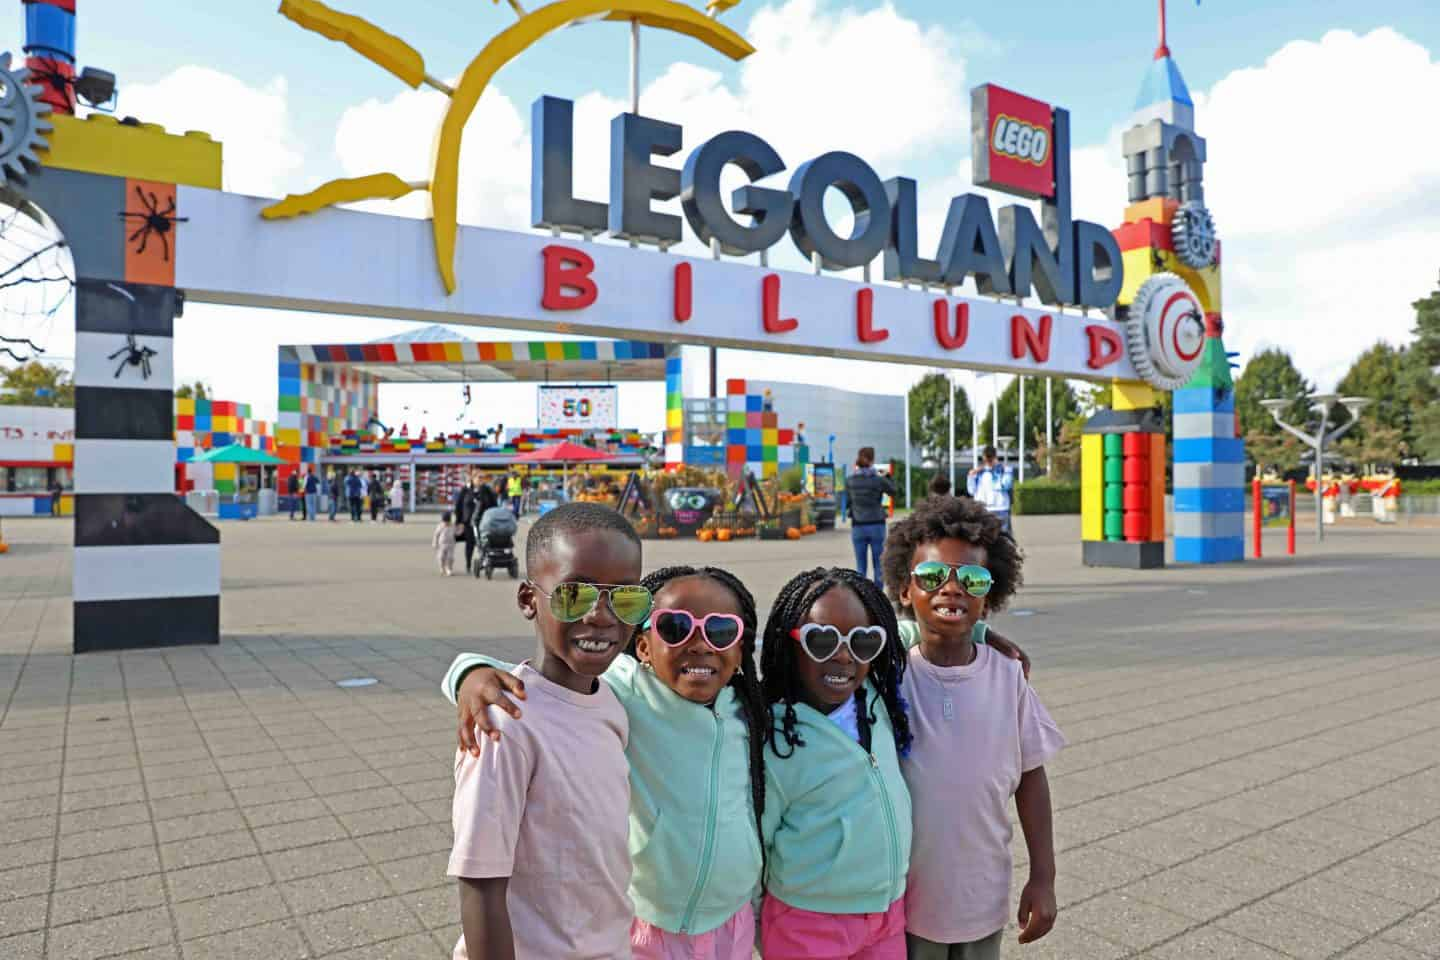 Billund Denmark With Kids The Original Legoland Theme Park and Lego House